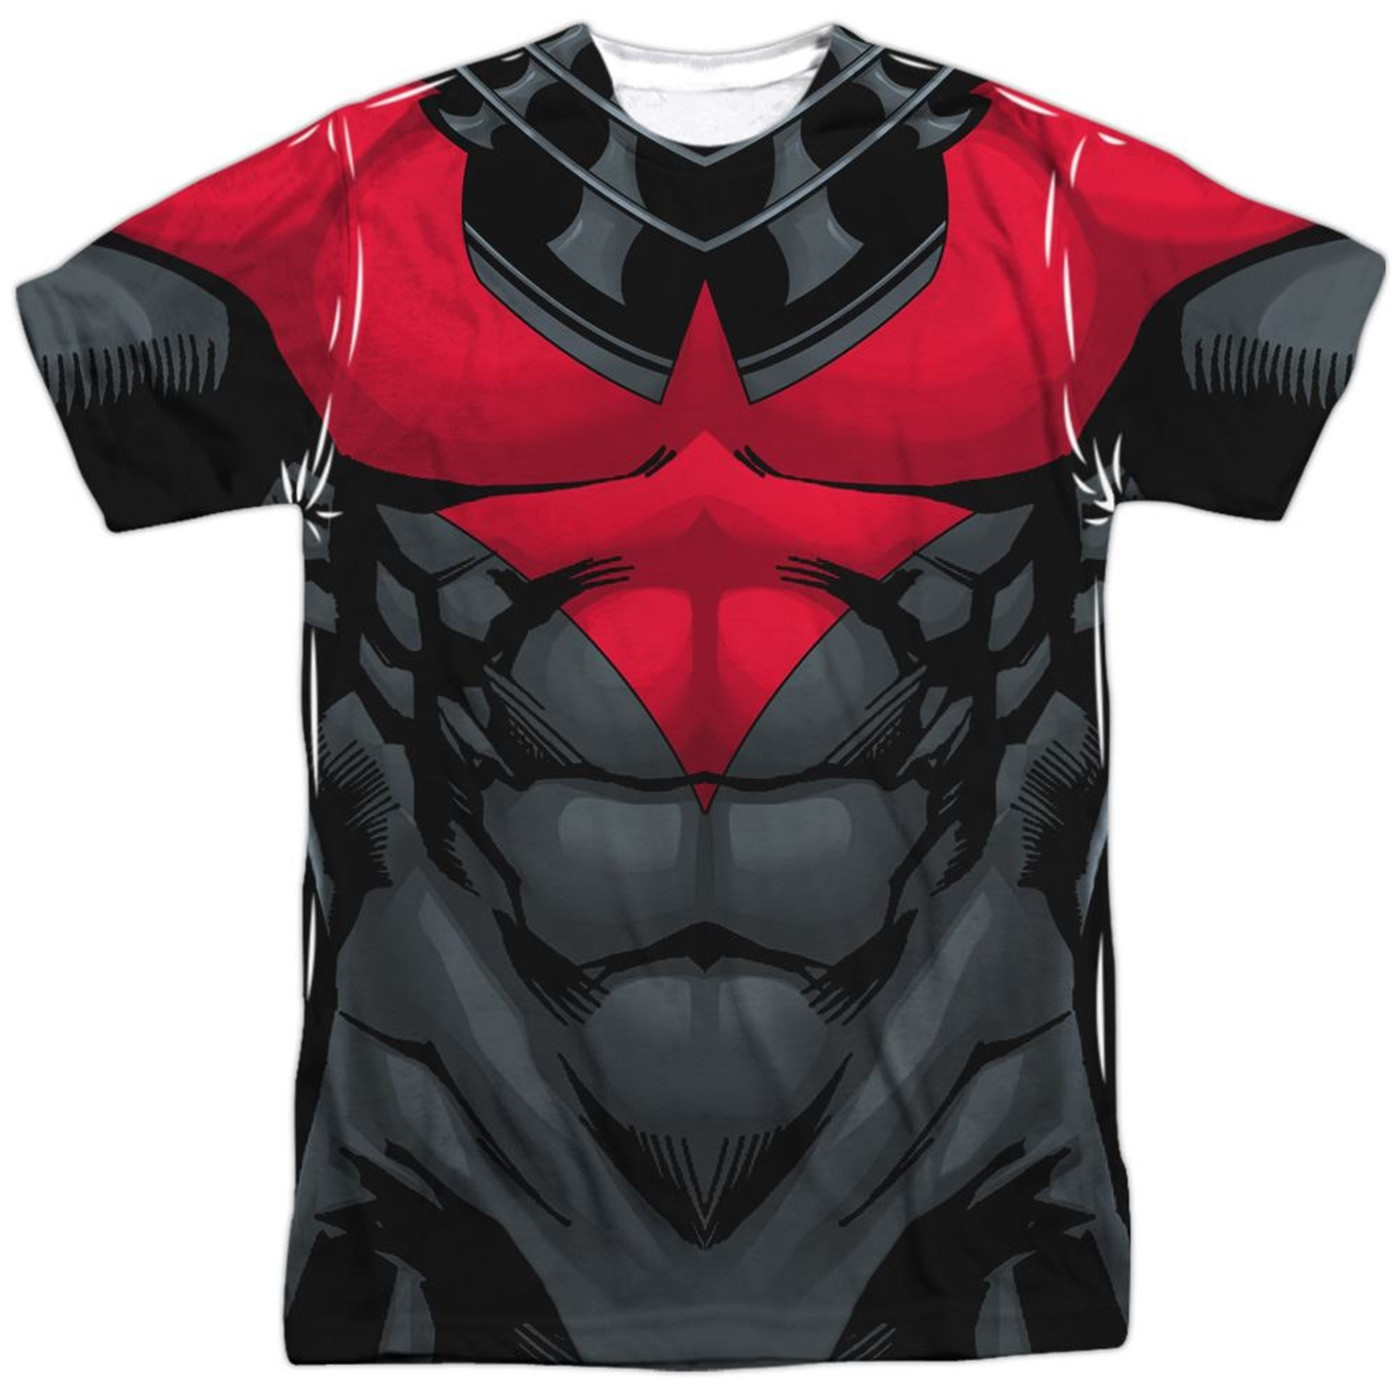 DROP- Nightwing 52 Costume Sublimated Men's T-Shirt